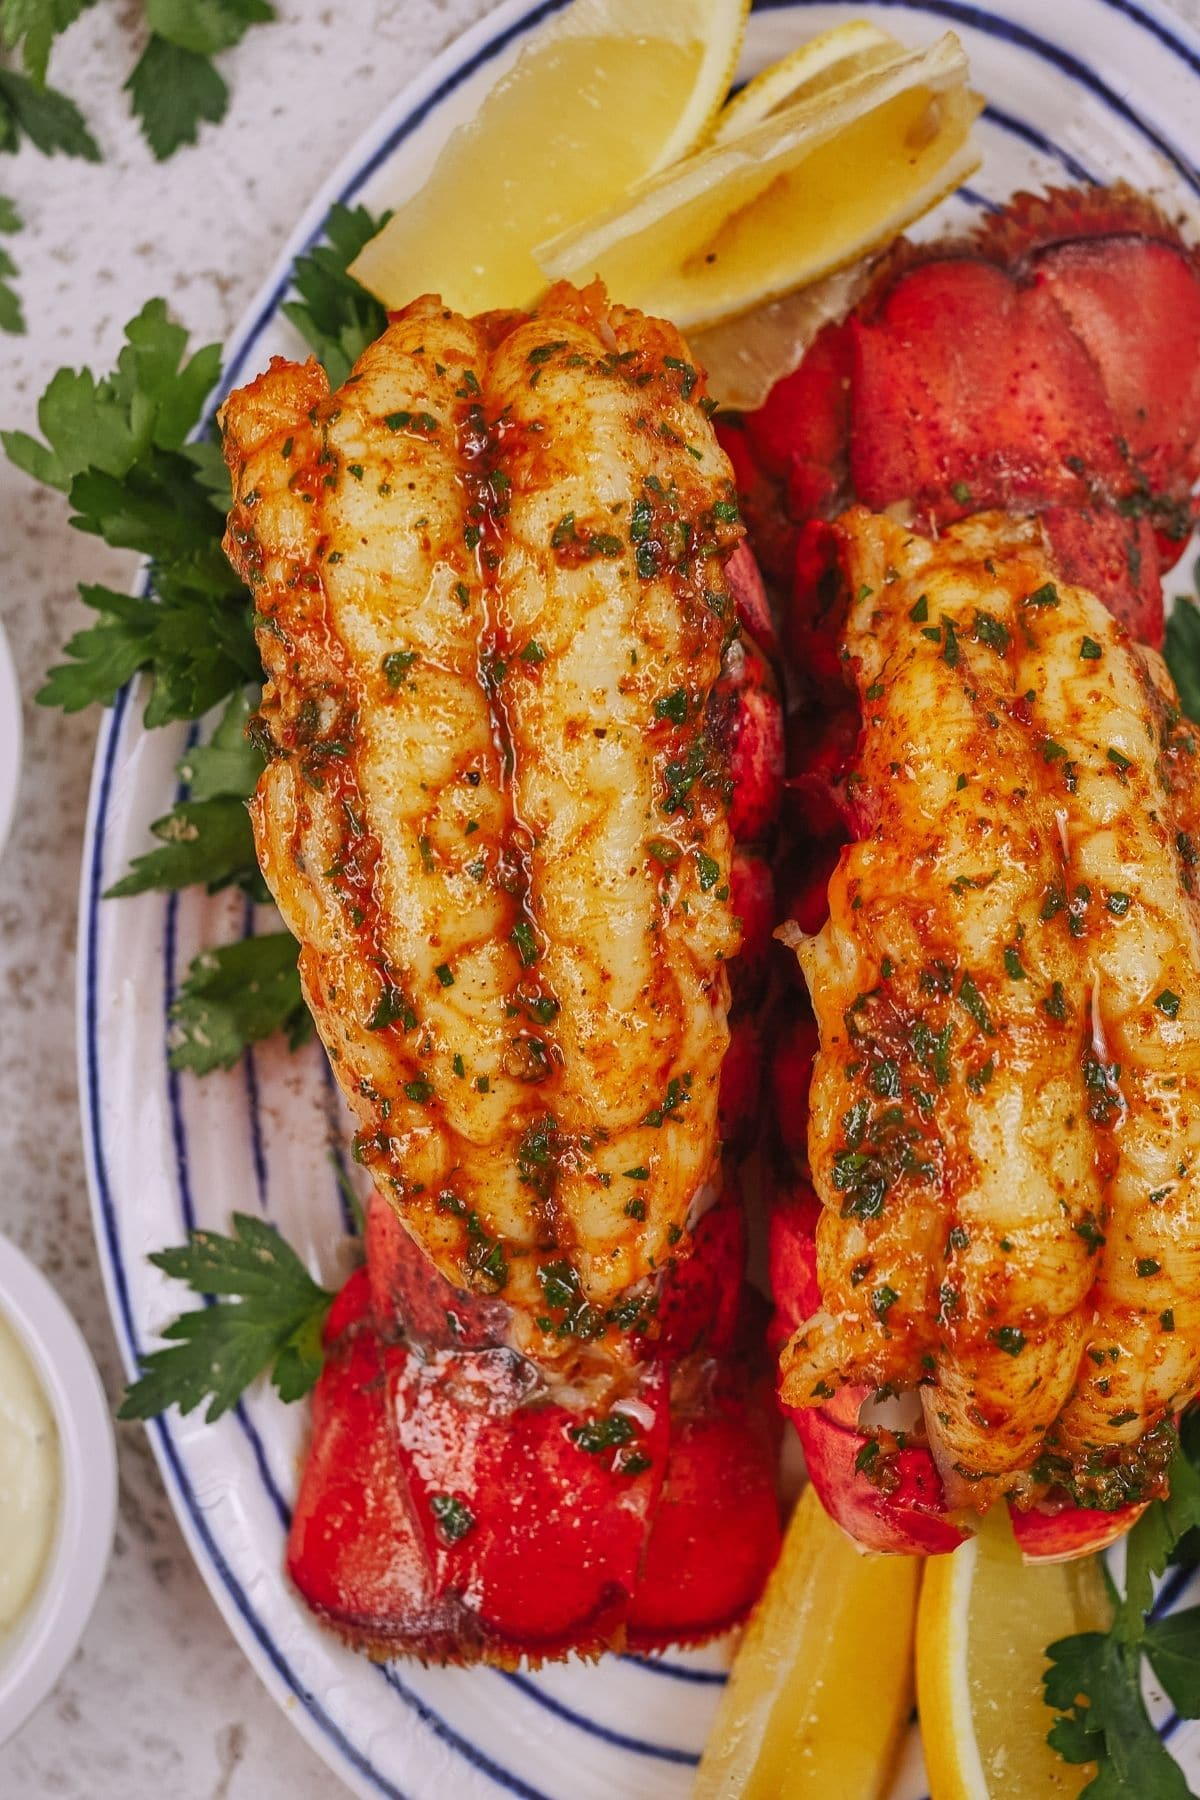 Lobster tails with lemon wedges and parsley on white and blue plate